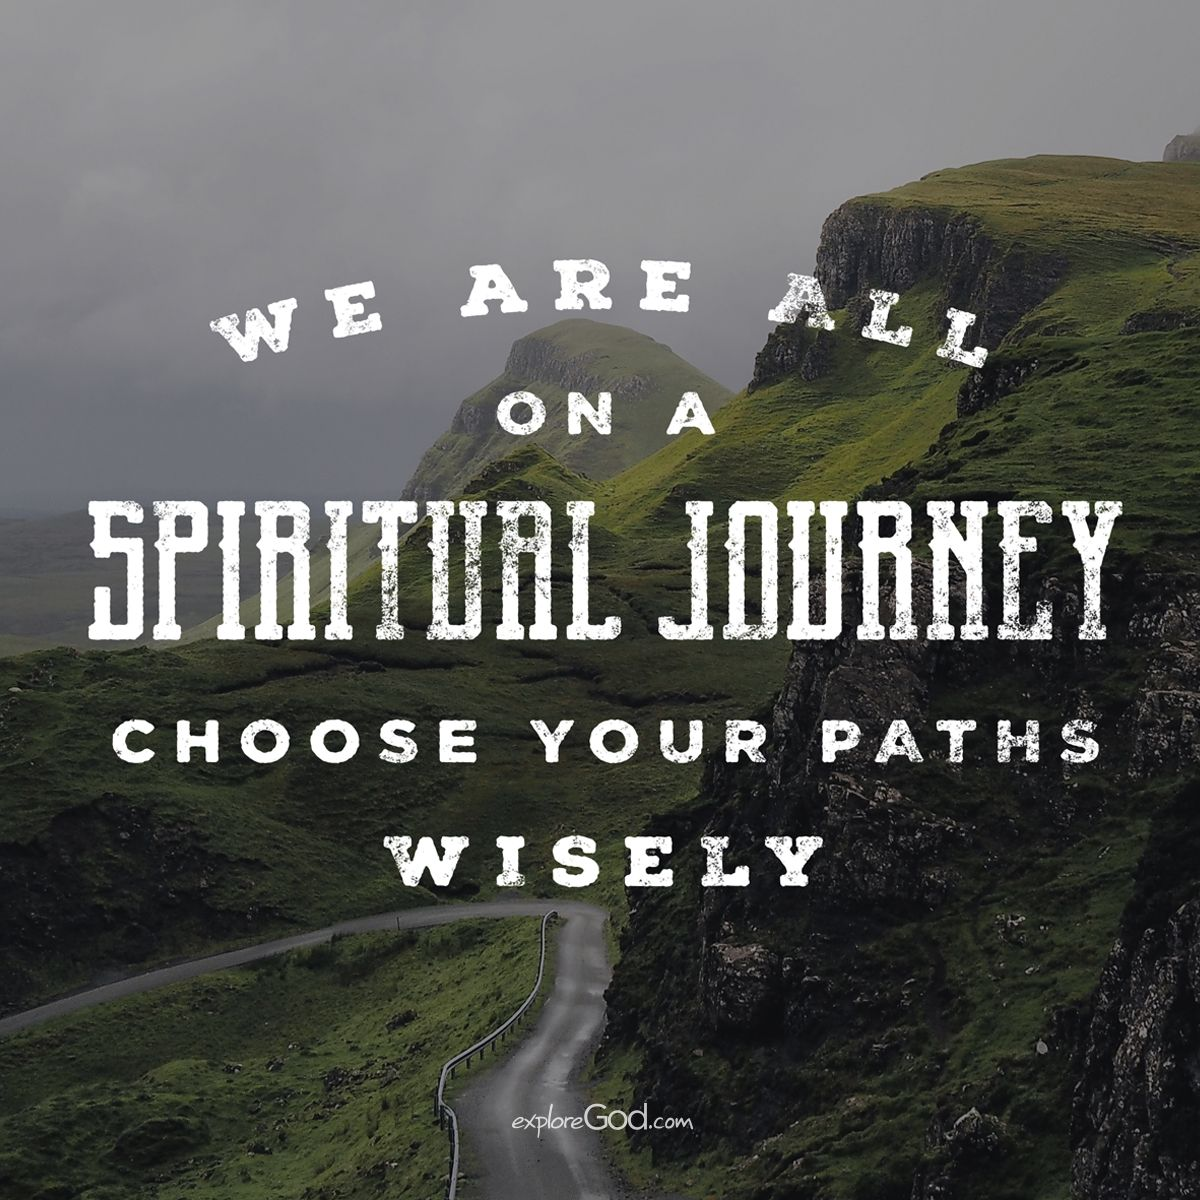 25 Best Life Journey Quotes On Pinterest: We Are All On A Spiritual Journey. Choose Your Paths